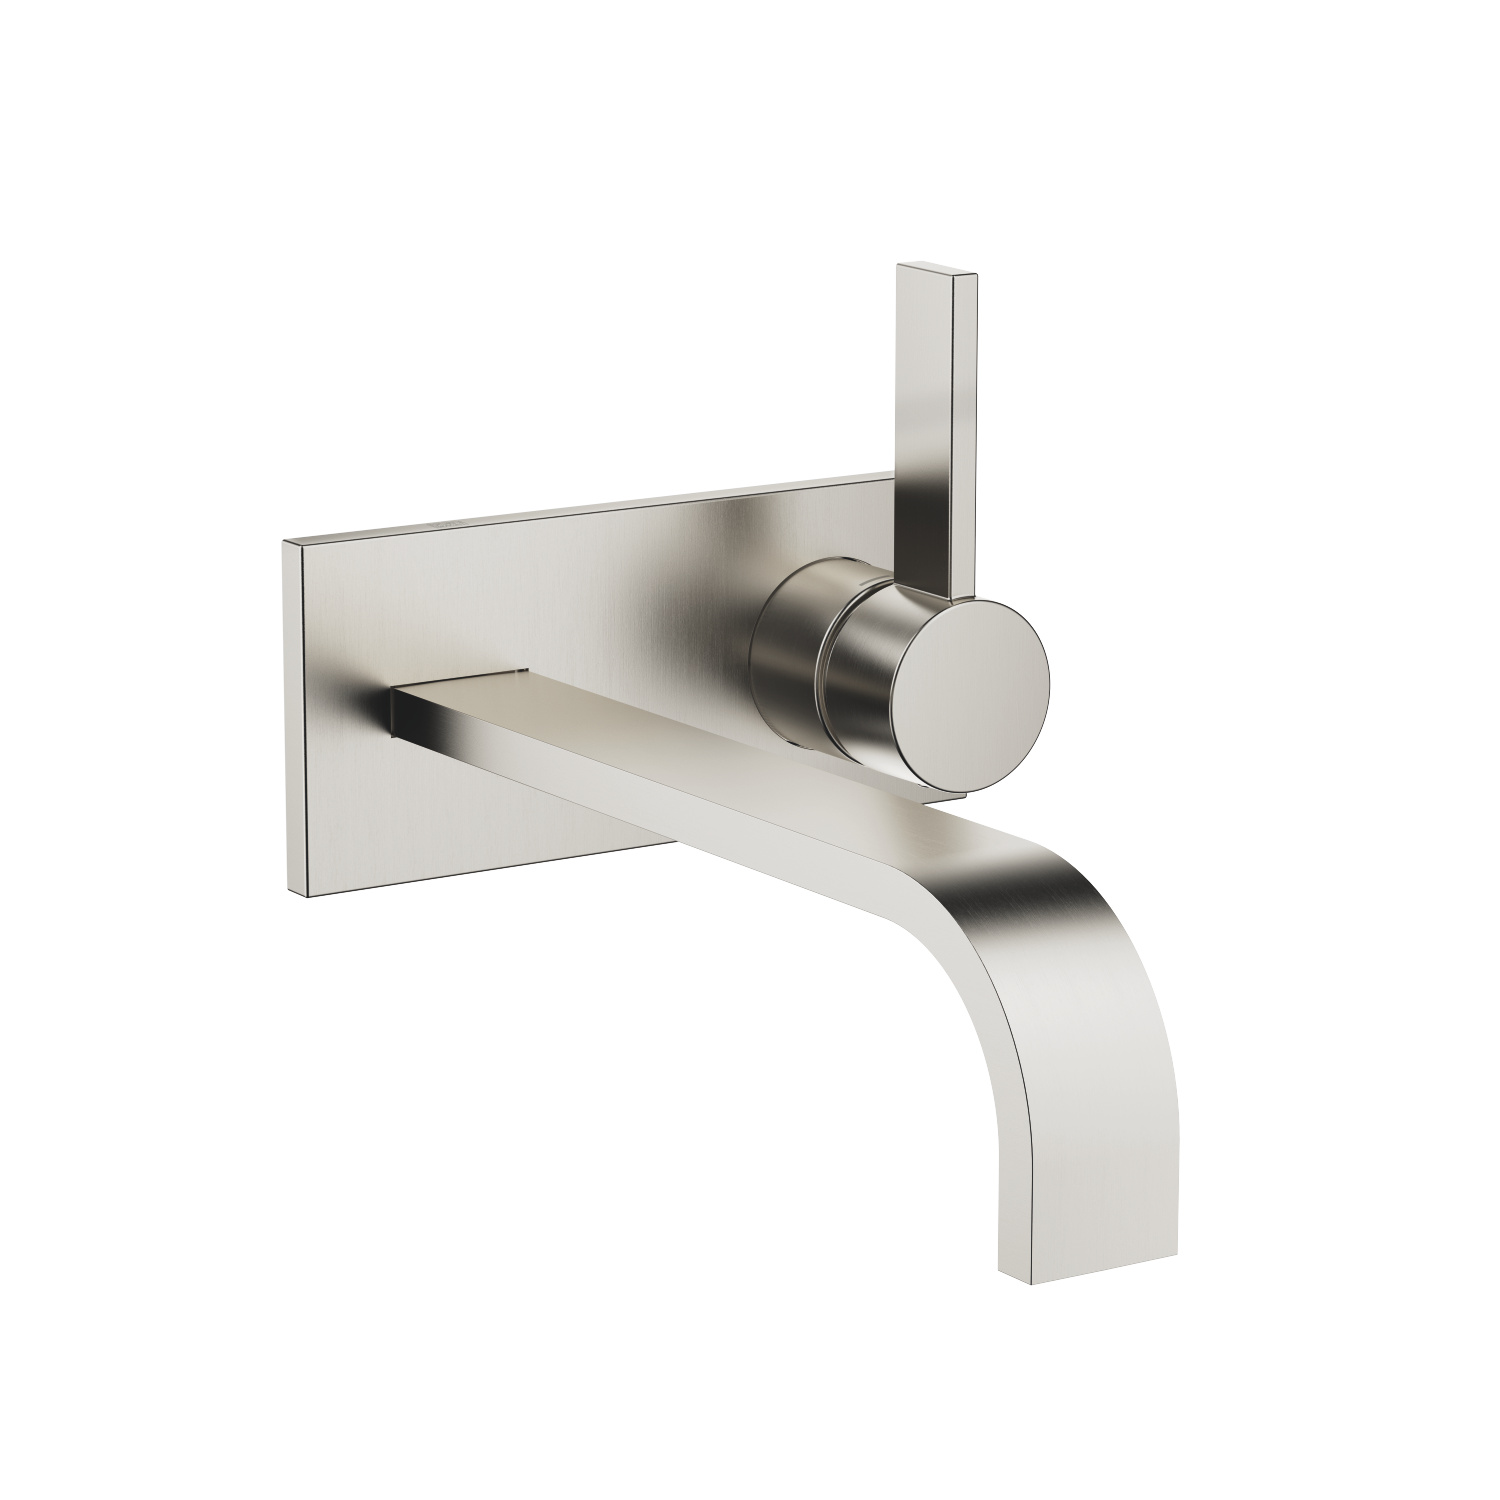 Wall-mounted single-lever mixer with cover plate without drain - platinum matte